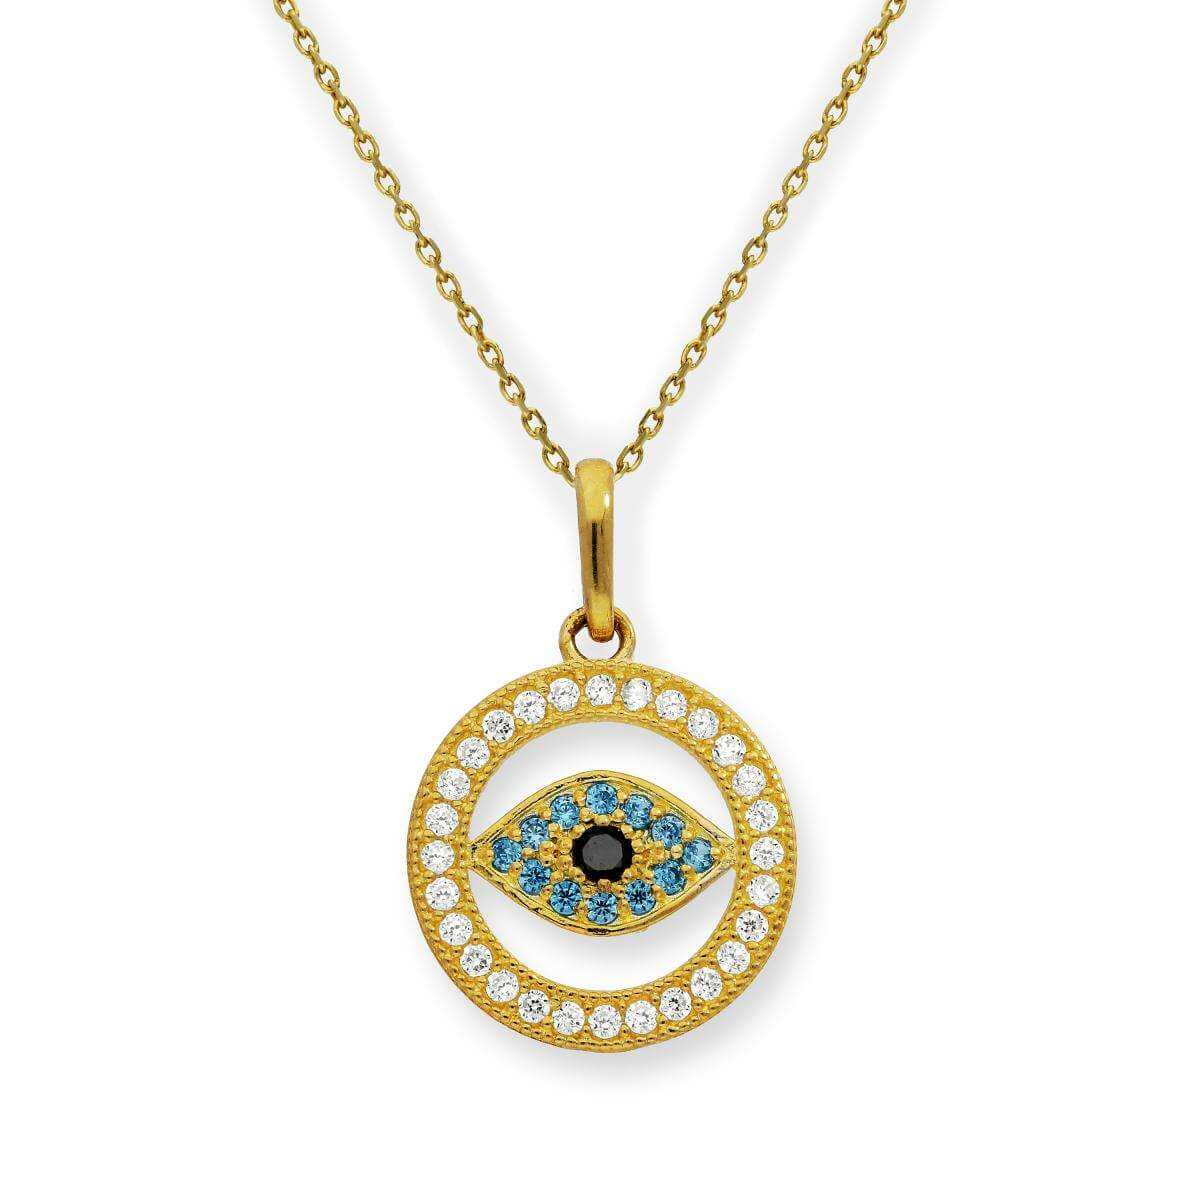 9ct Gold & CZ Crystal Evil Eye Pendant on Chain